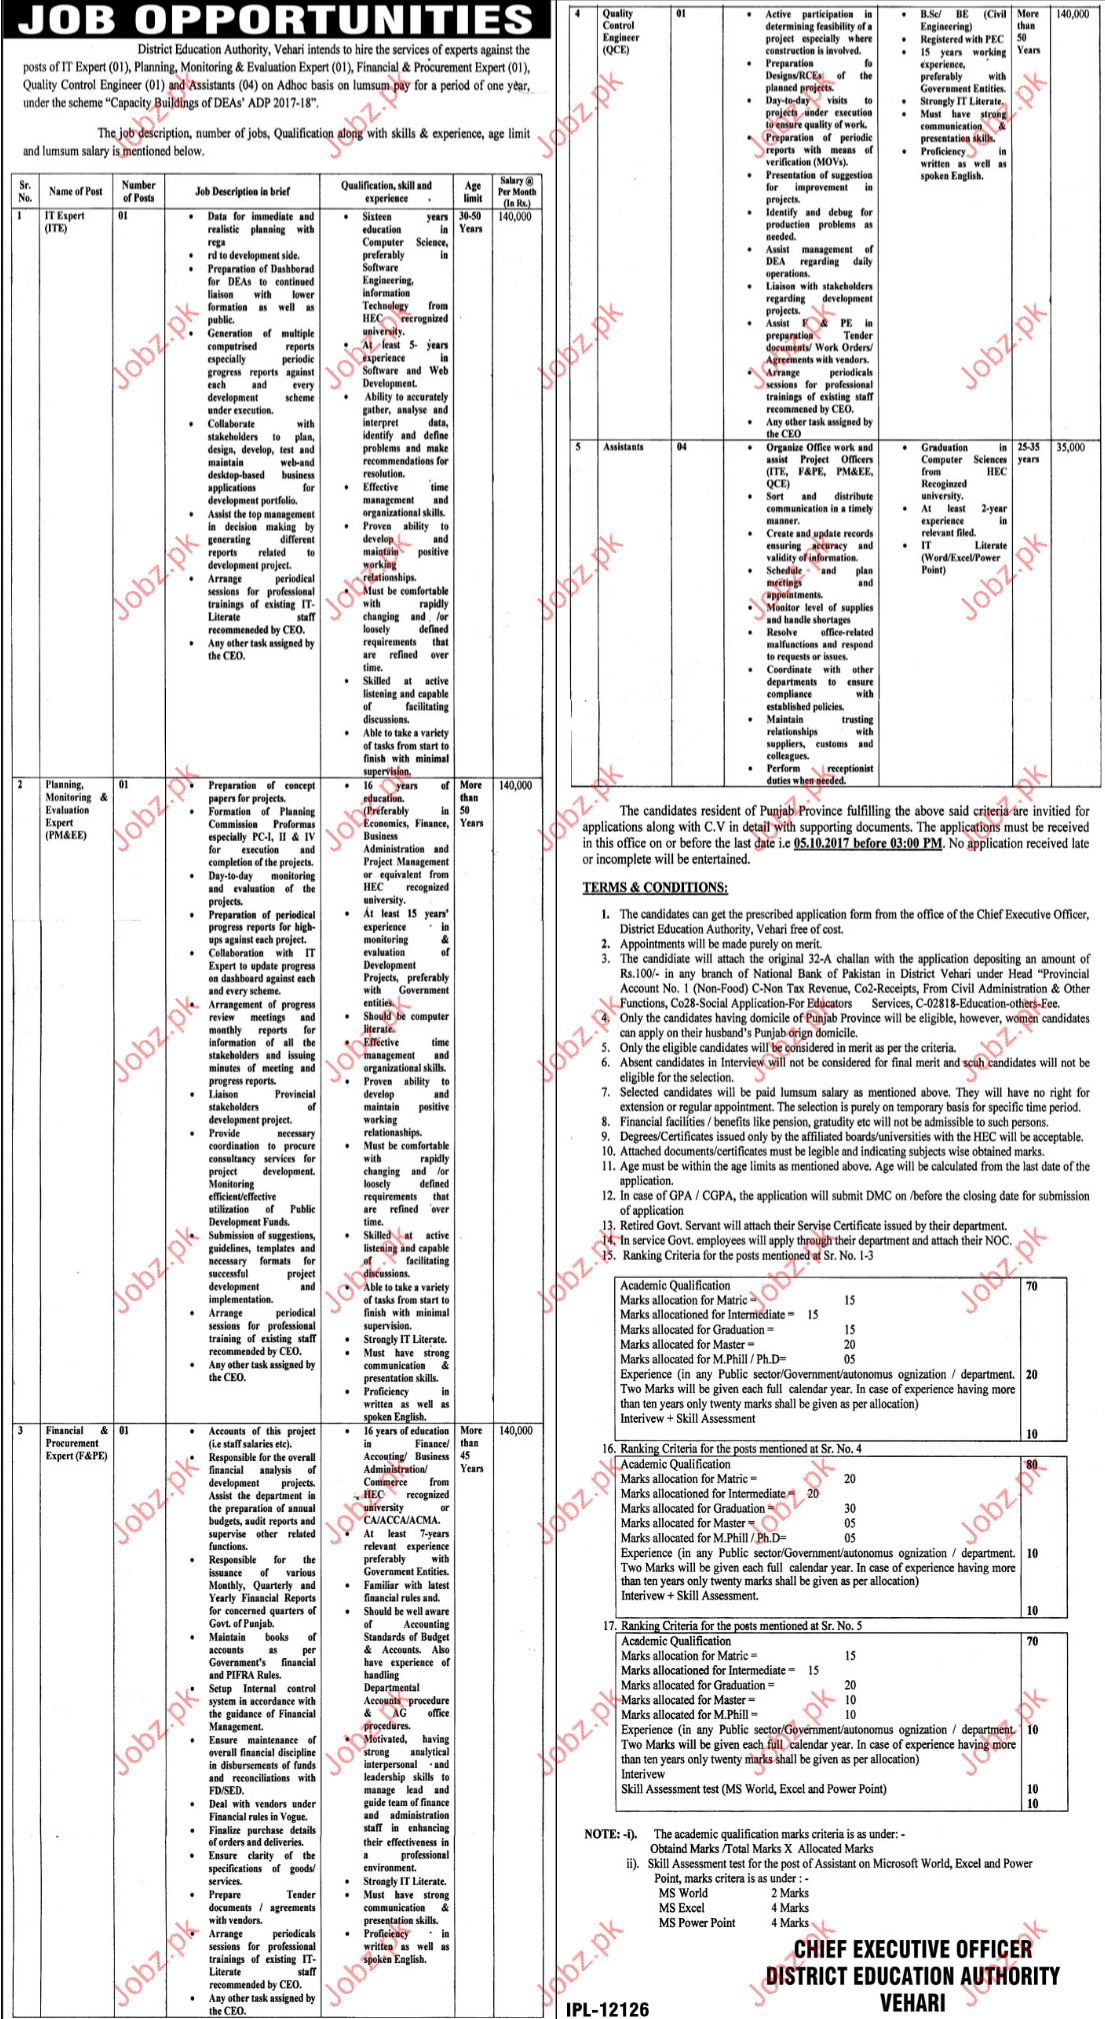 District Education Authority Required Planning Evaluation